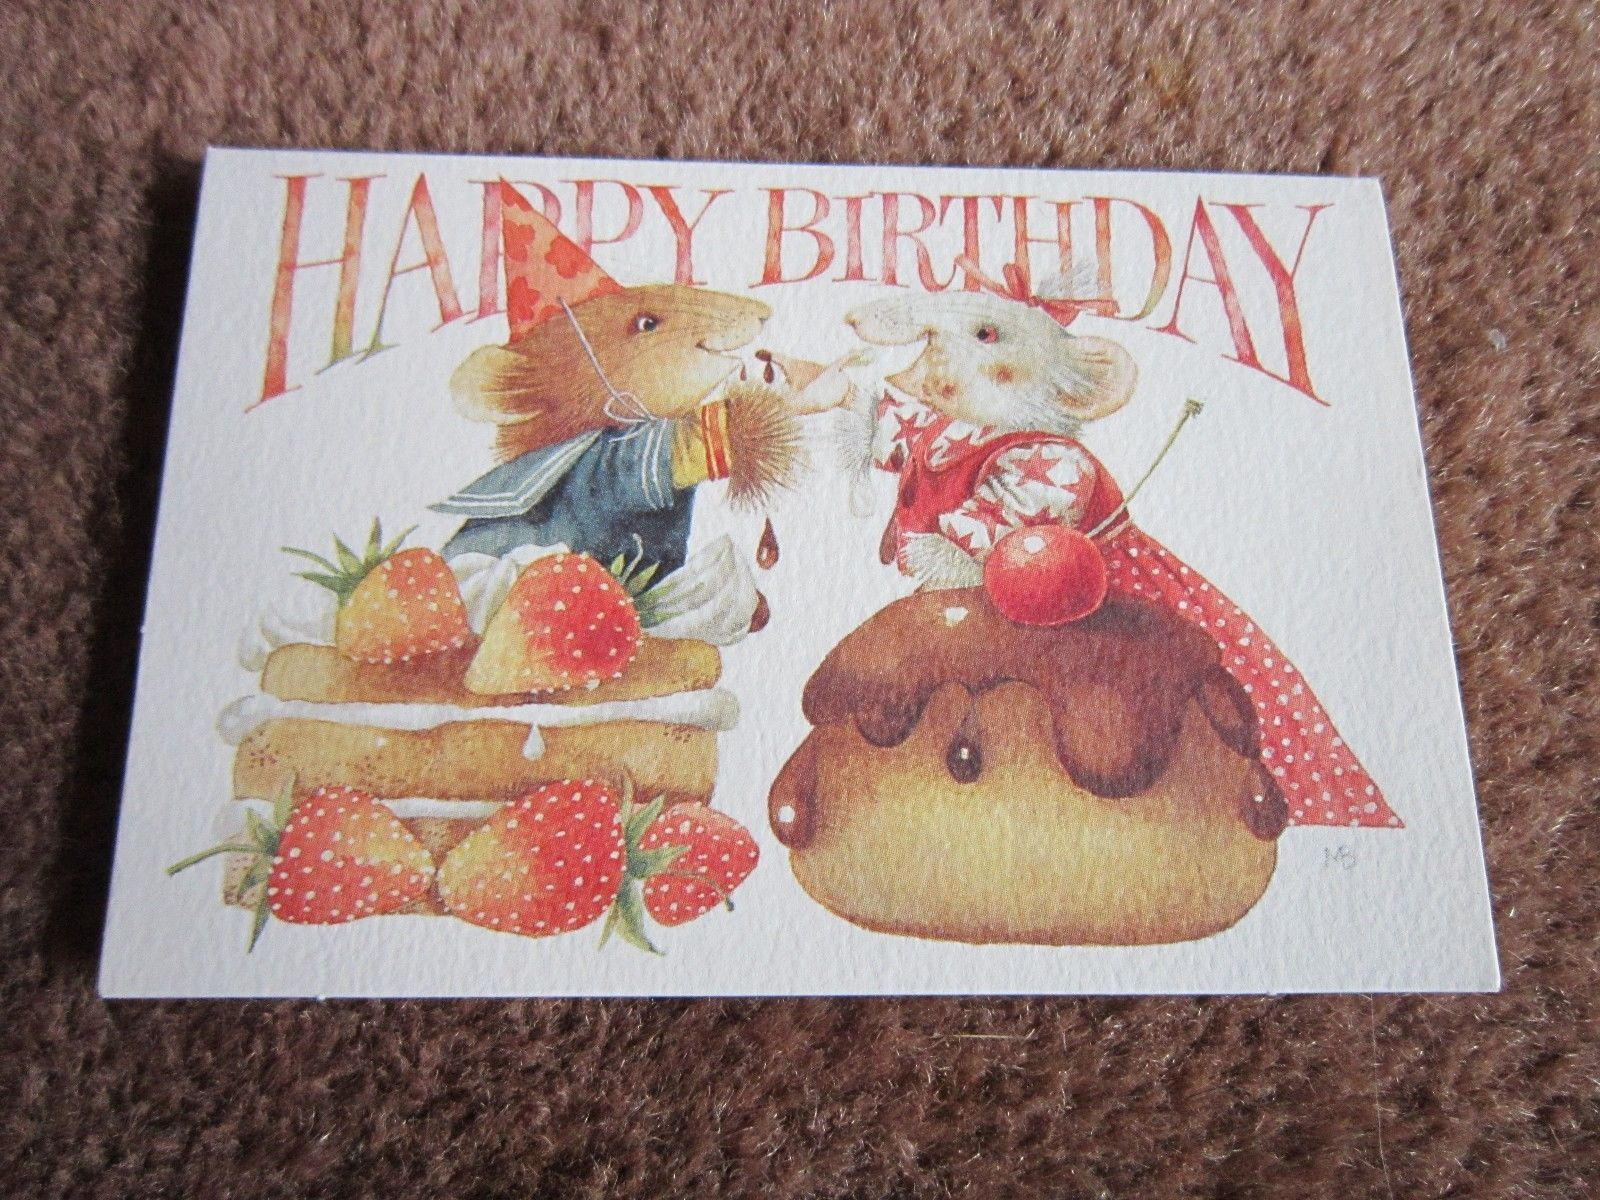 Vera the mouse bianca happy birthday marjolein bastinitty bitty vera the mouse bianca happy birthday marjolein bastinitty bitty greeting card m4hsunfo Images